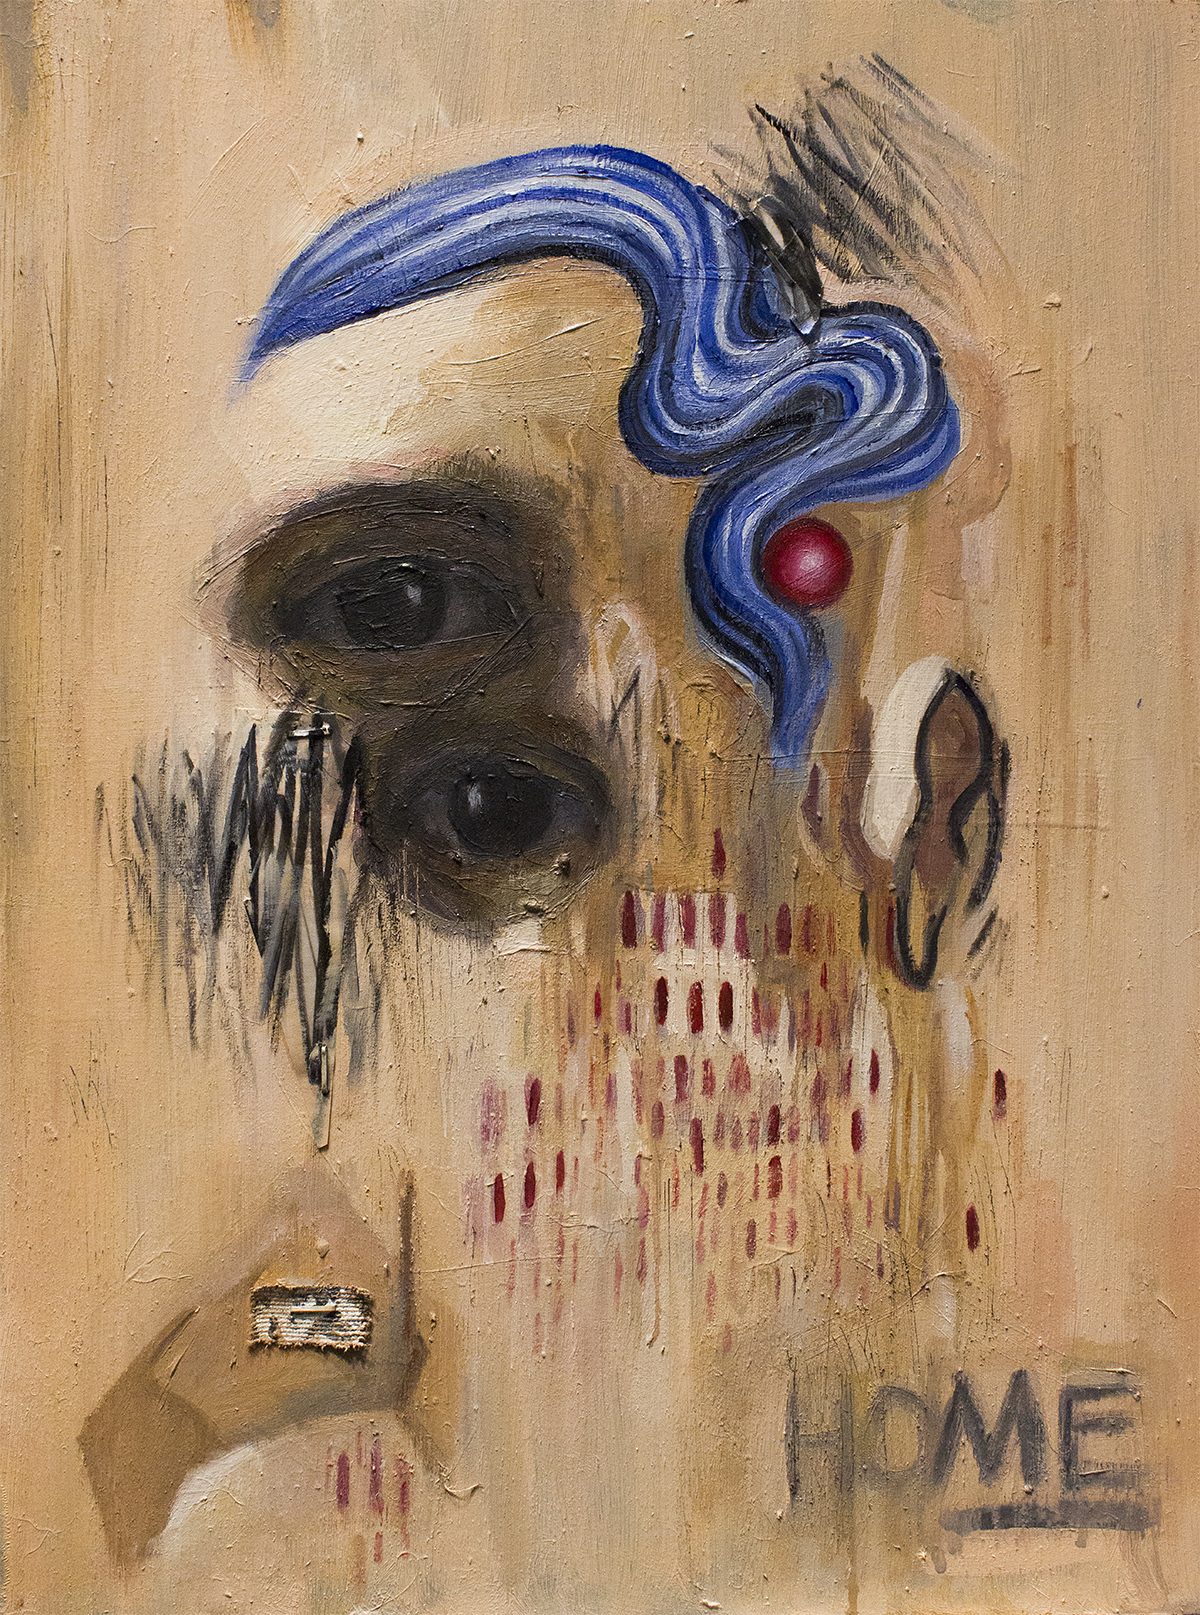 Dwell / Mixed Media on Wood / 29 x 39.5 cm / 2019